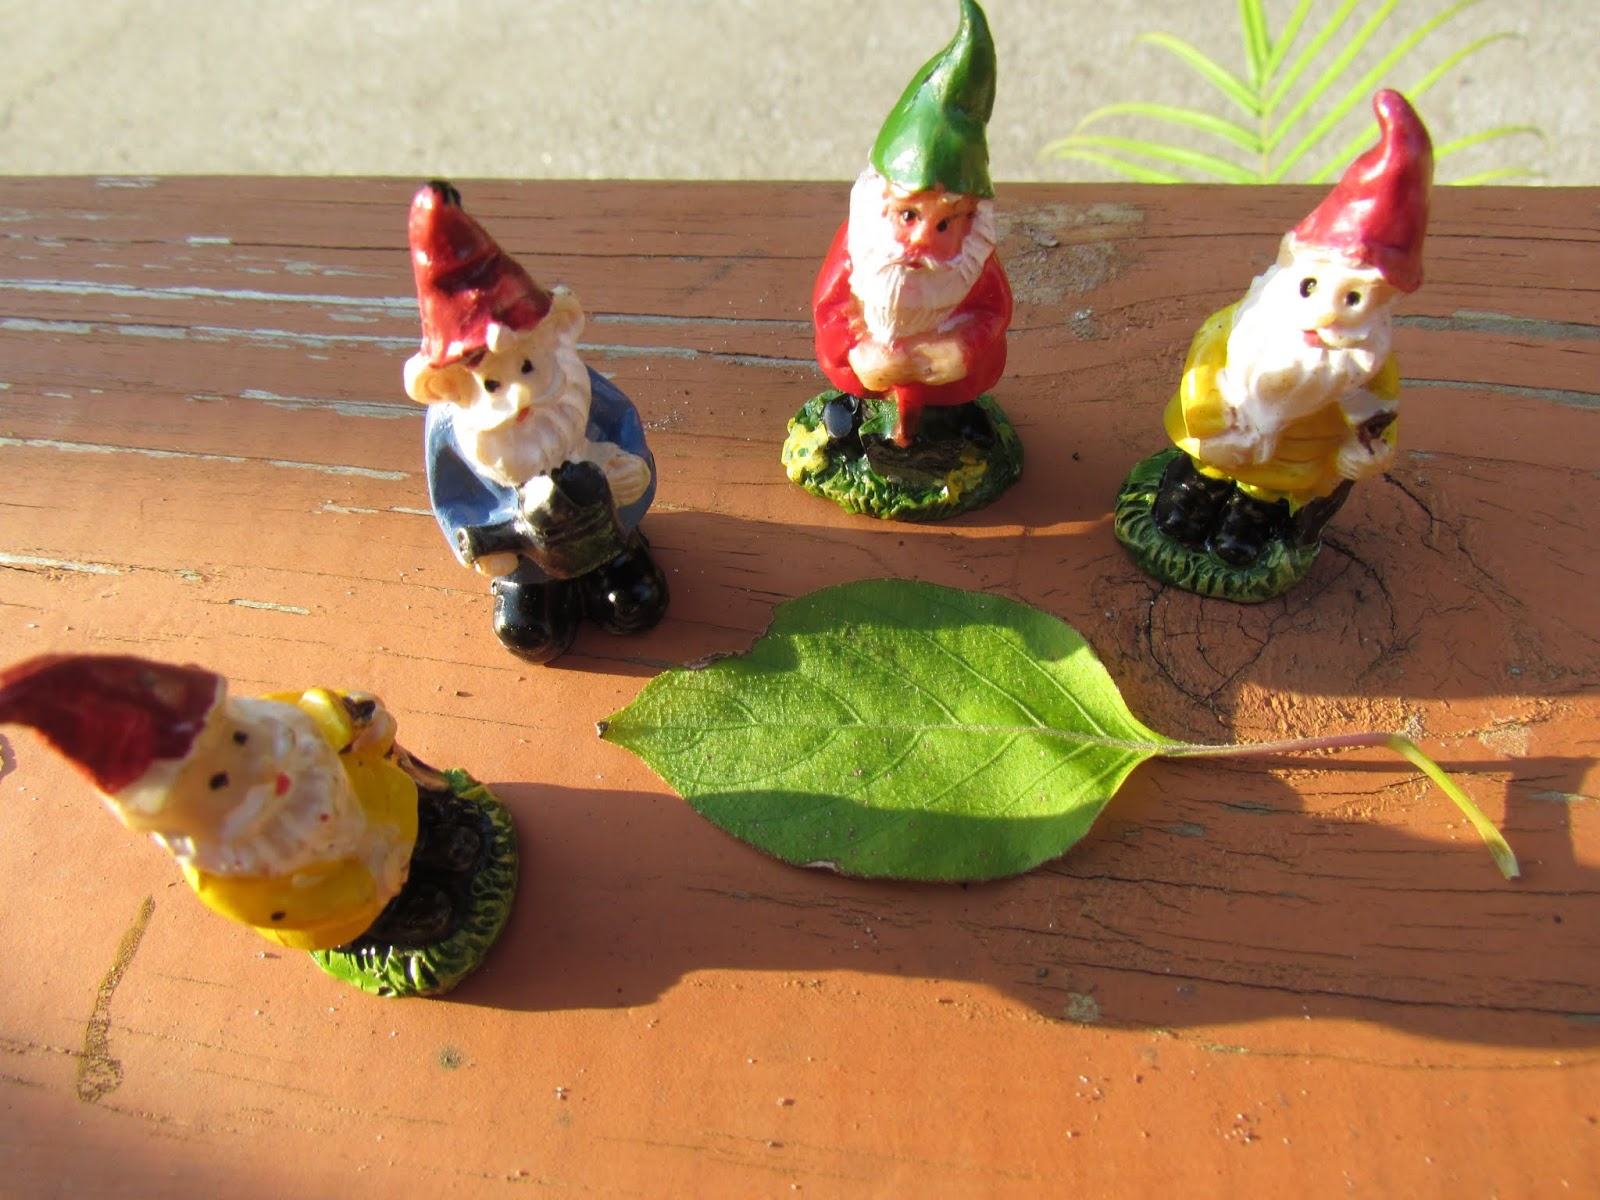 A Group of Gnomes Gathering Around a Golden Leaf in Mid-Summer in Florida Performing a Moon Ritual and Ceremony at Dusk